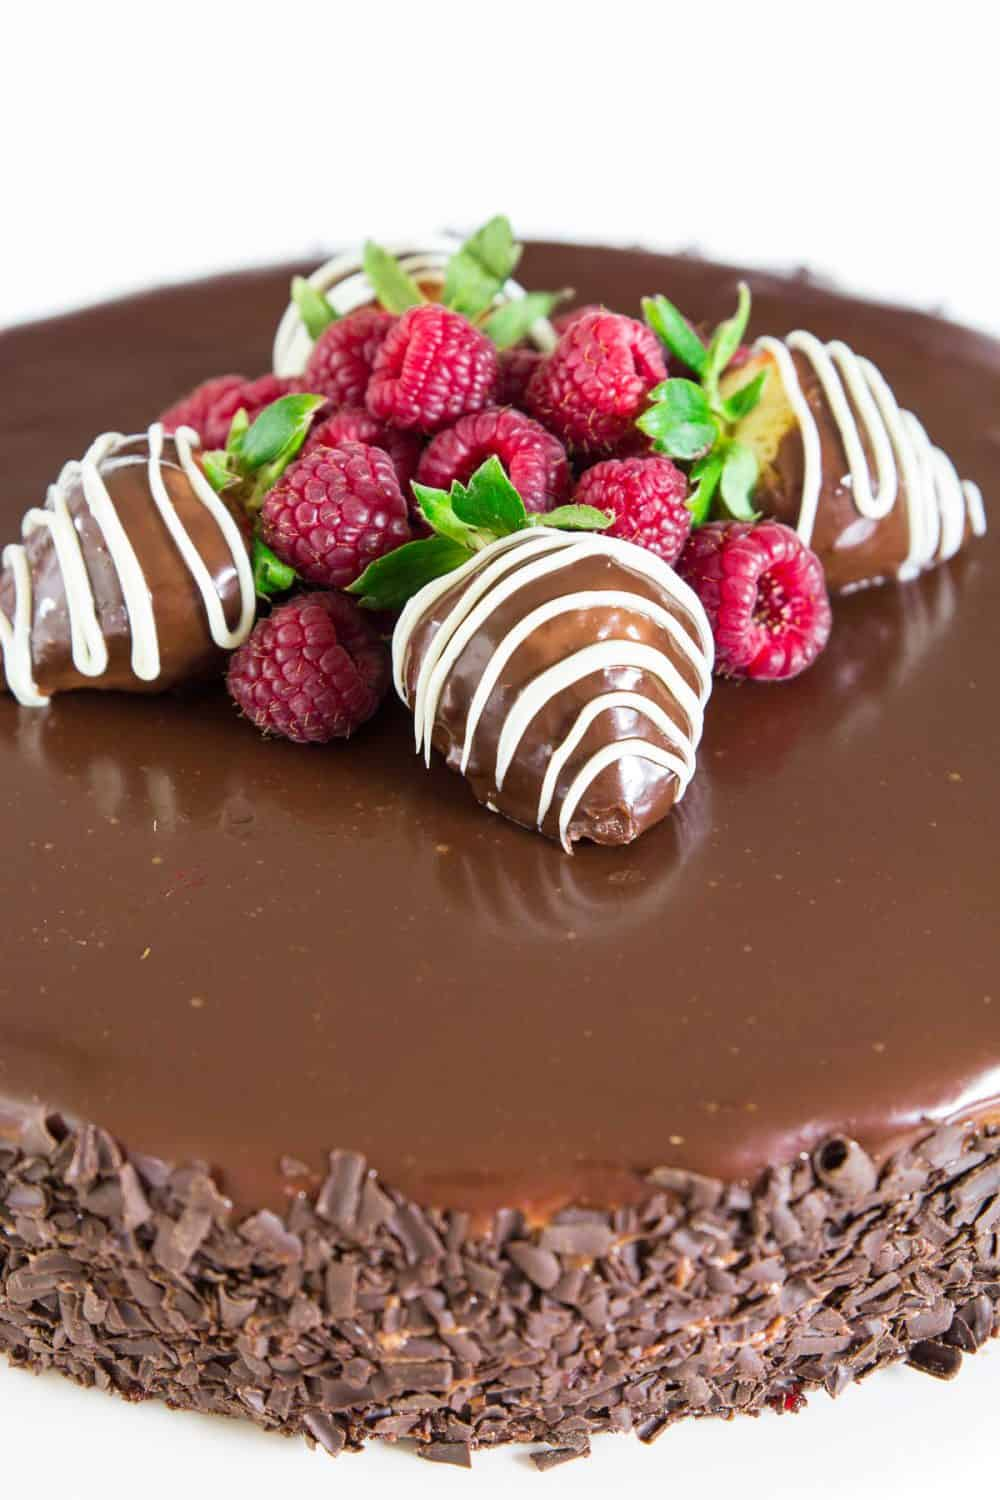 Decorate your chocolate mousse cake recipe with a lovely chocolate covered strawberry or a handful of fresh raspberries.